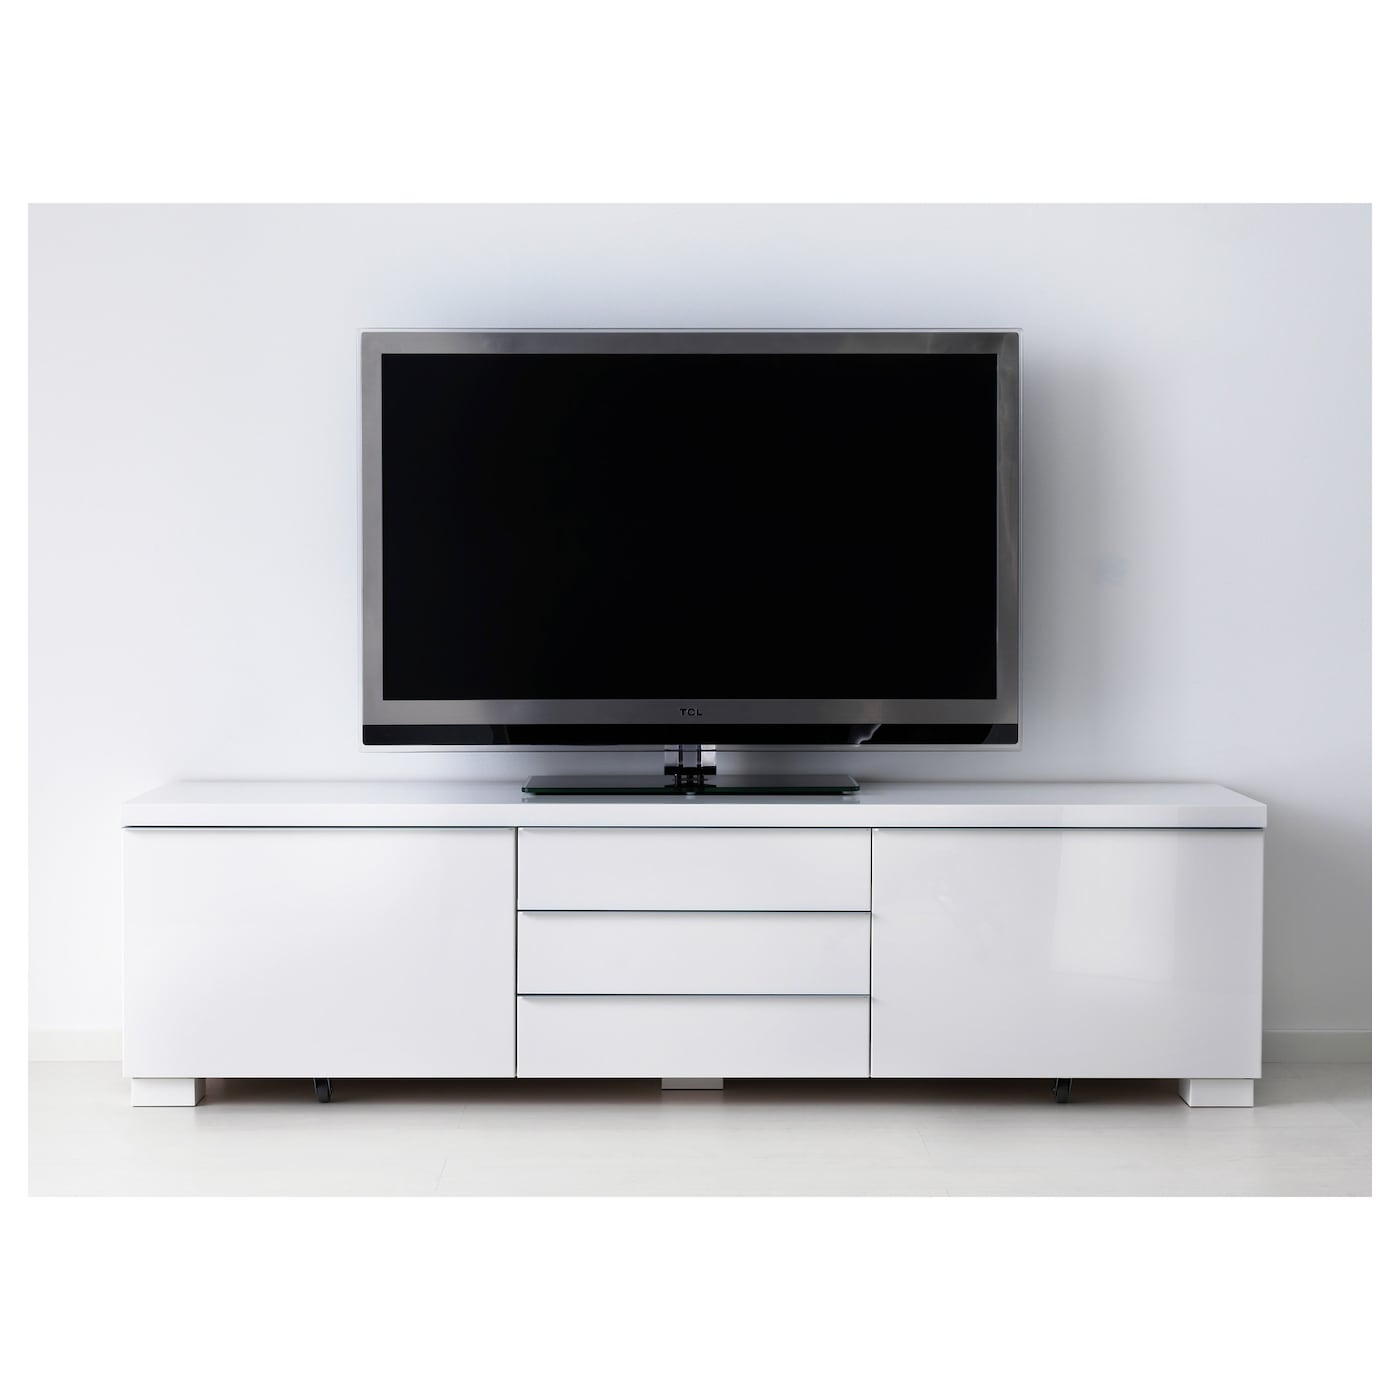 Meuble Tv Ikea Expedit Dimension - Best Burs Tv Bench High Gloss White 180×41 Cm Ikea[mjhdah]http://www.ikea.com/gb/en/images/products/lappland-tv-storage-unit-black-brown__0246278_pe385388_s5.jpg